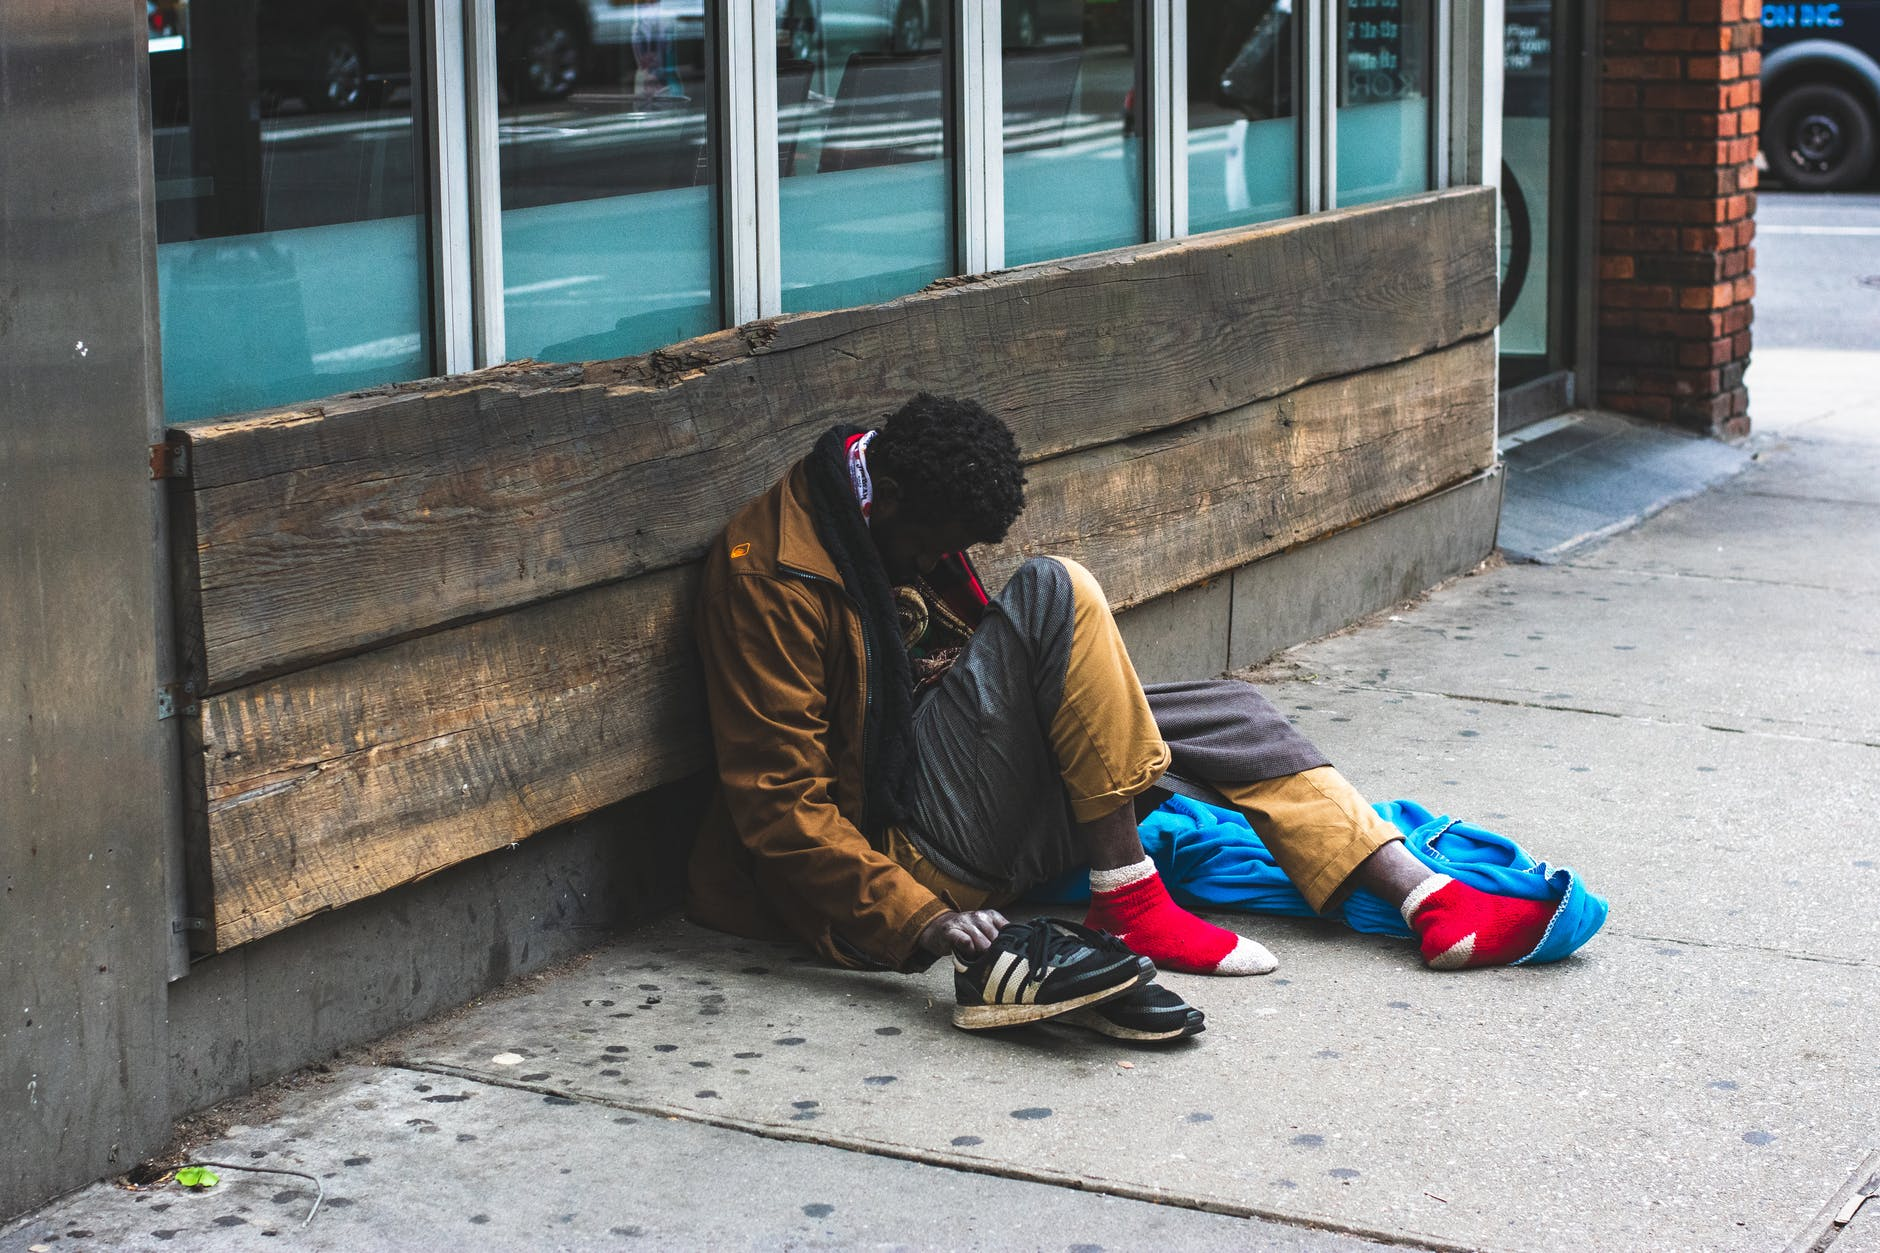 The homeless man sitting directly on the sidewalk, leaning against the storefront, had his shoes off with his legs resting on another jacket